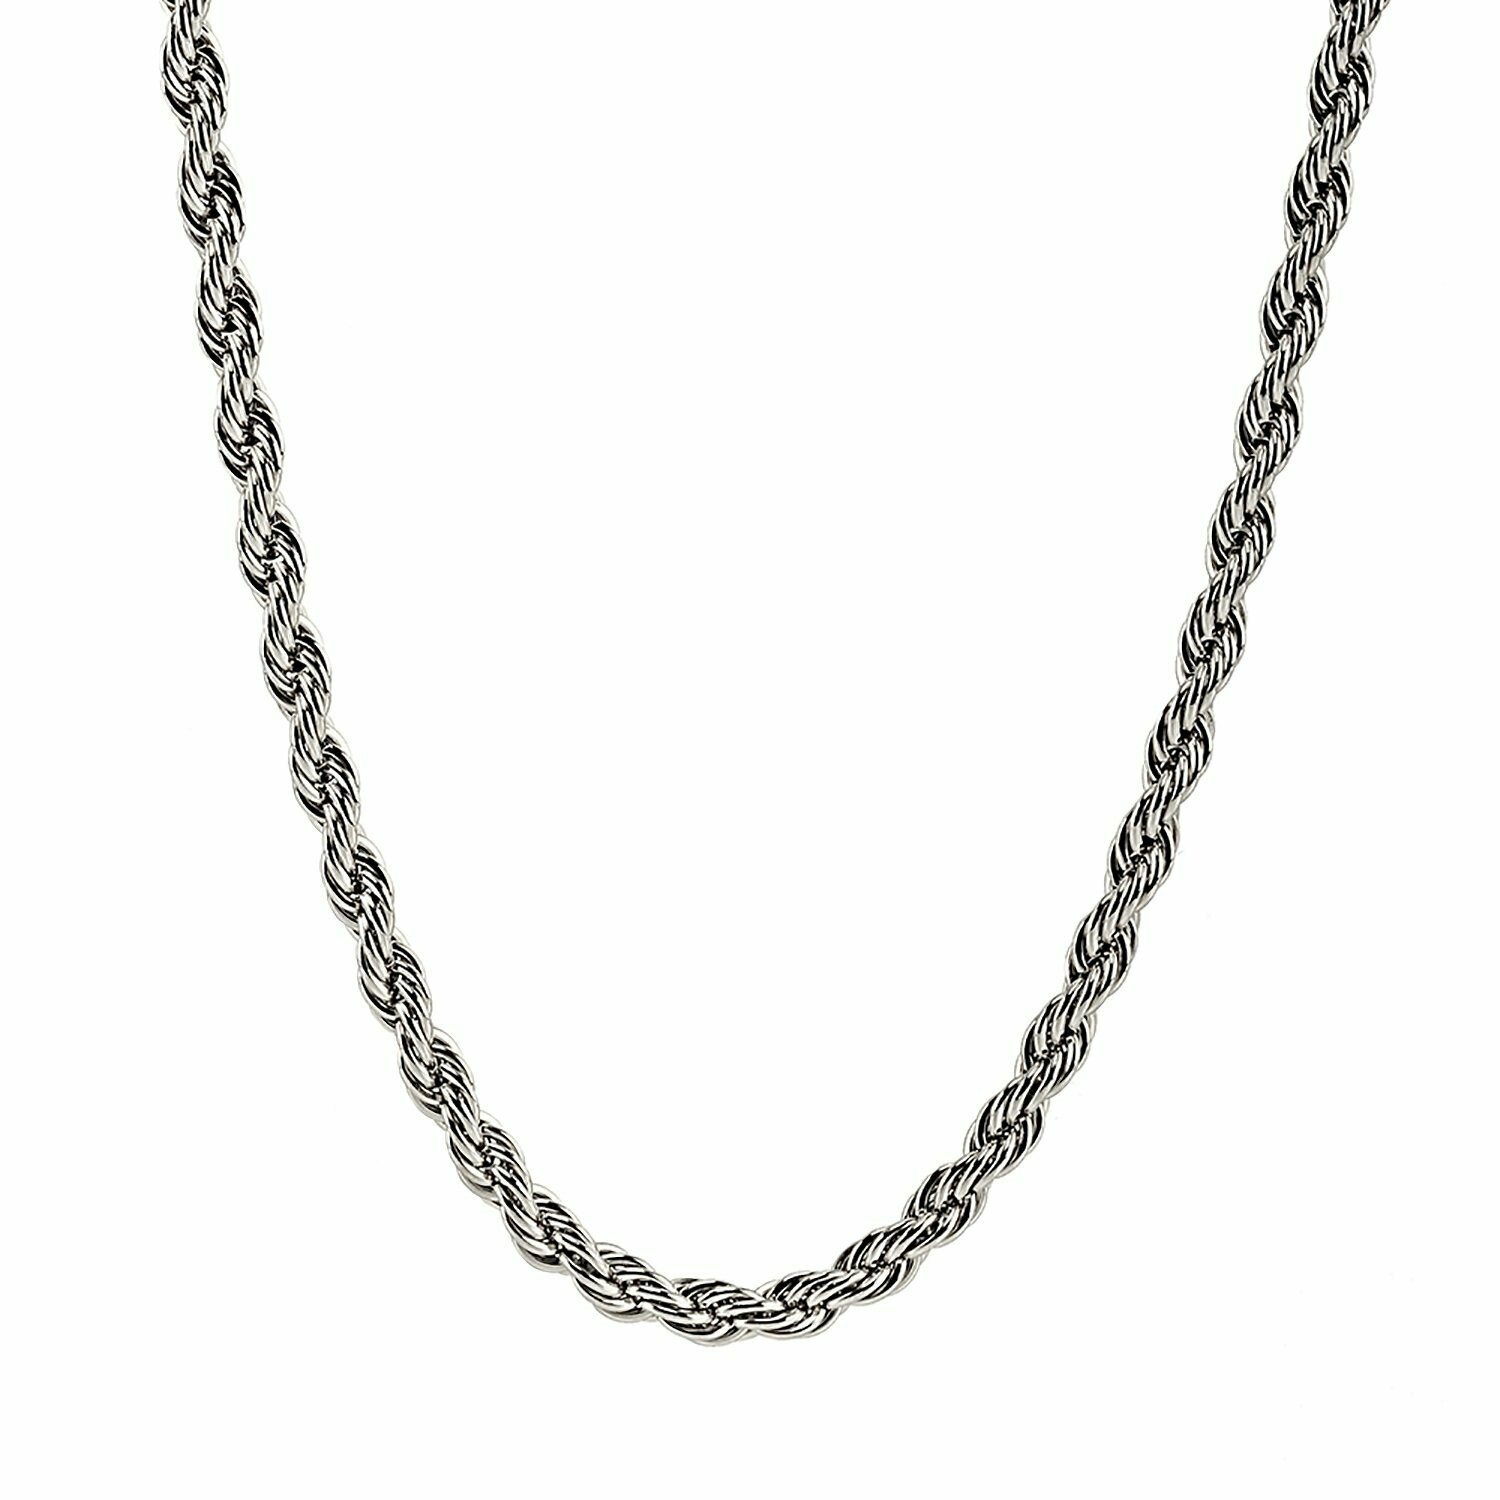 S.S. ROPE 8MM ROPE CHAIN